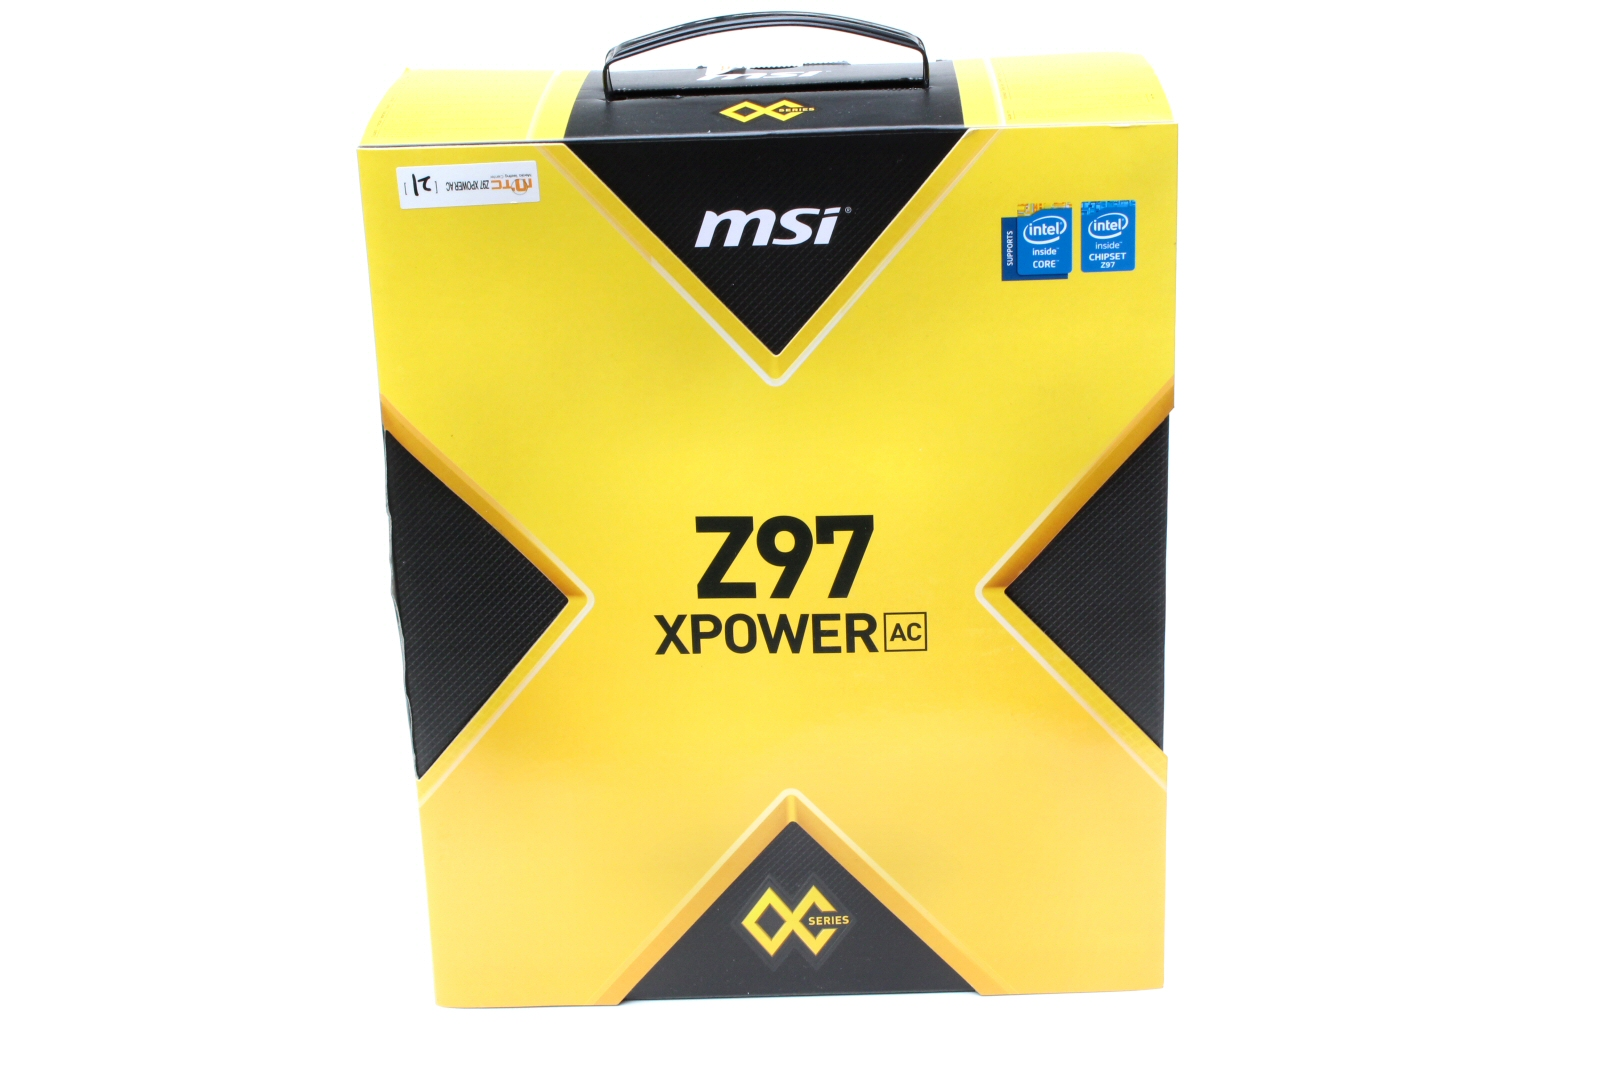 [Review] MSI Z97 XPower AC-img_5243.jpg